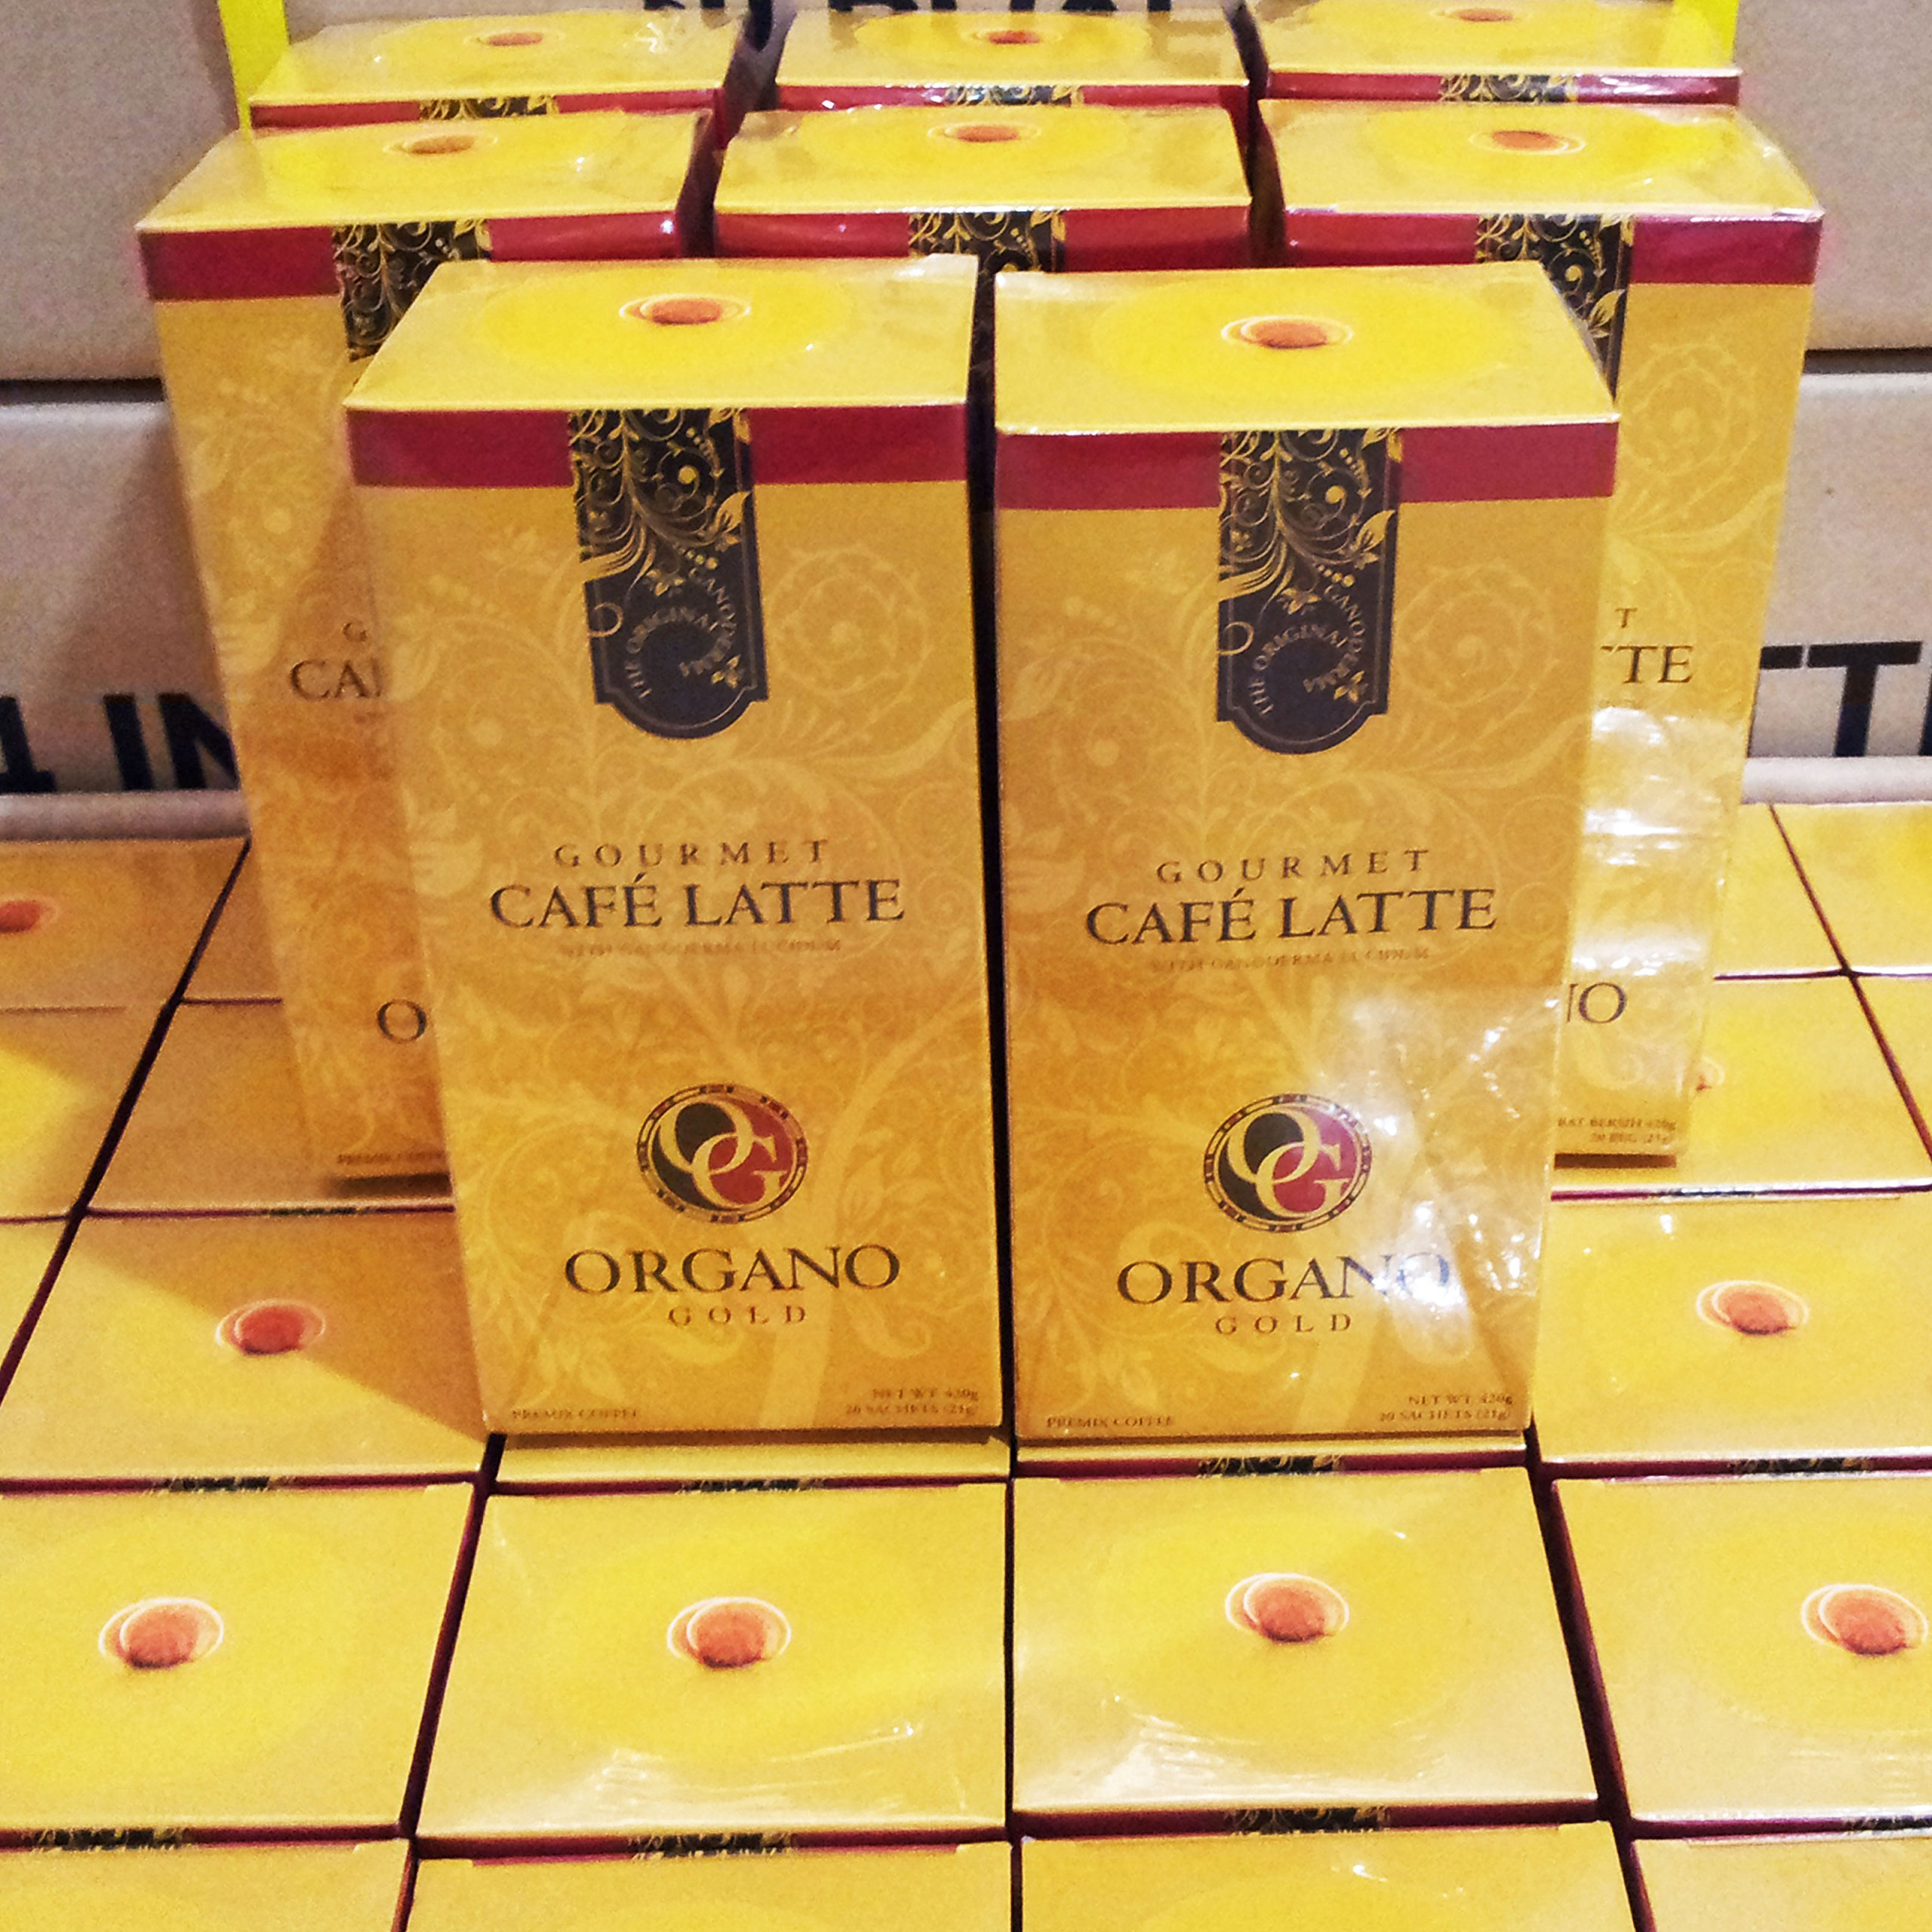 8 Boxes Organo Gold Gourmet Cafe Latte with 100% Organic Ganoderma Lucidum Extract - HOS by Organo Gold